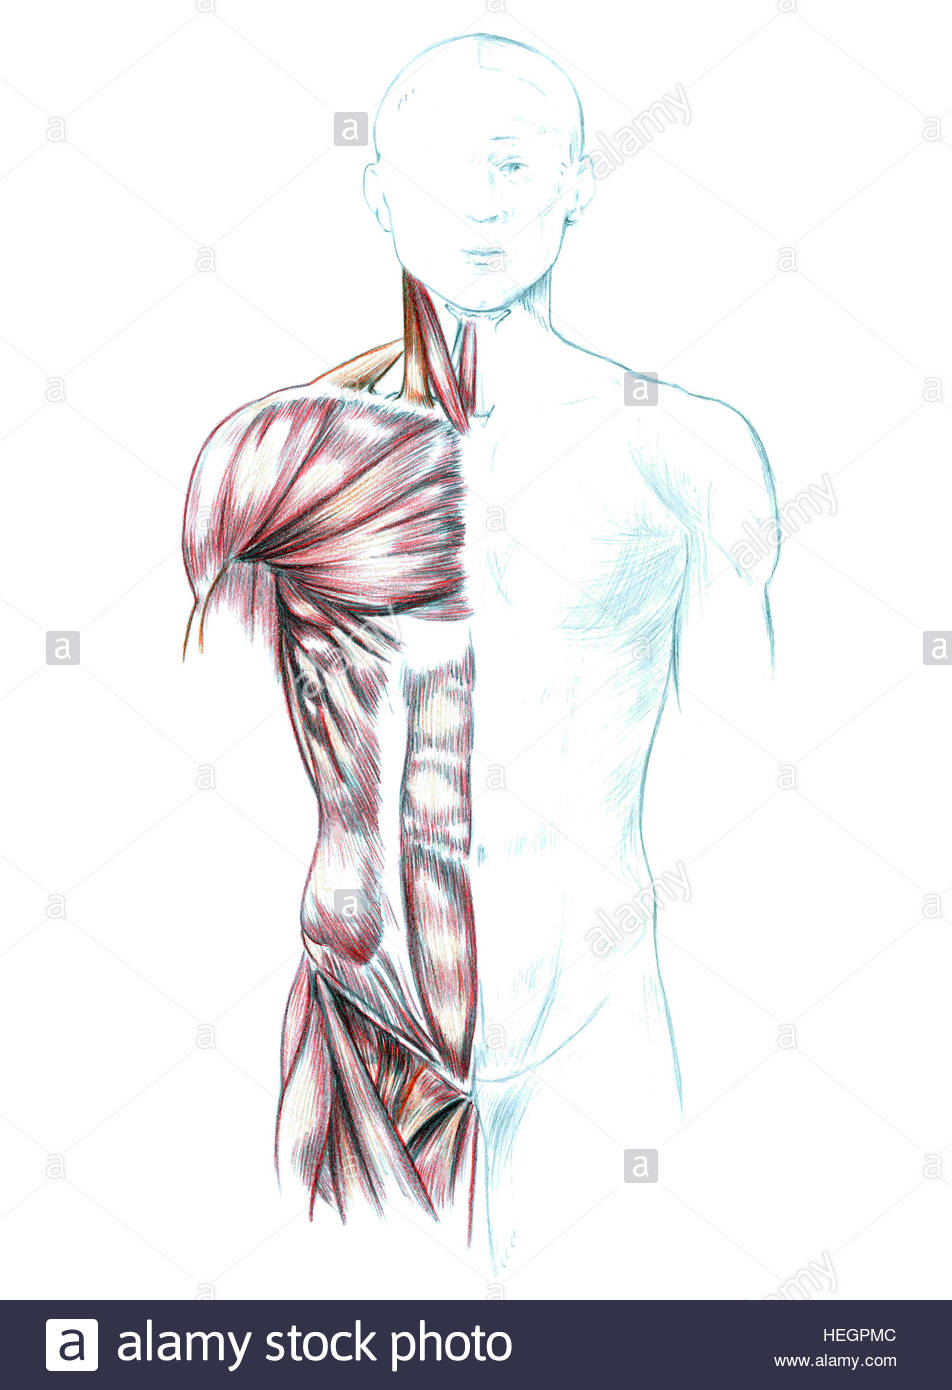 952x1390 Muscles Of Neck, Shoulders, Chest And Abdomen, Hand Drawn Medical